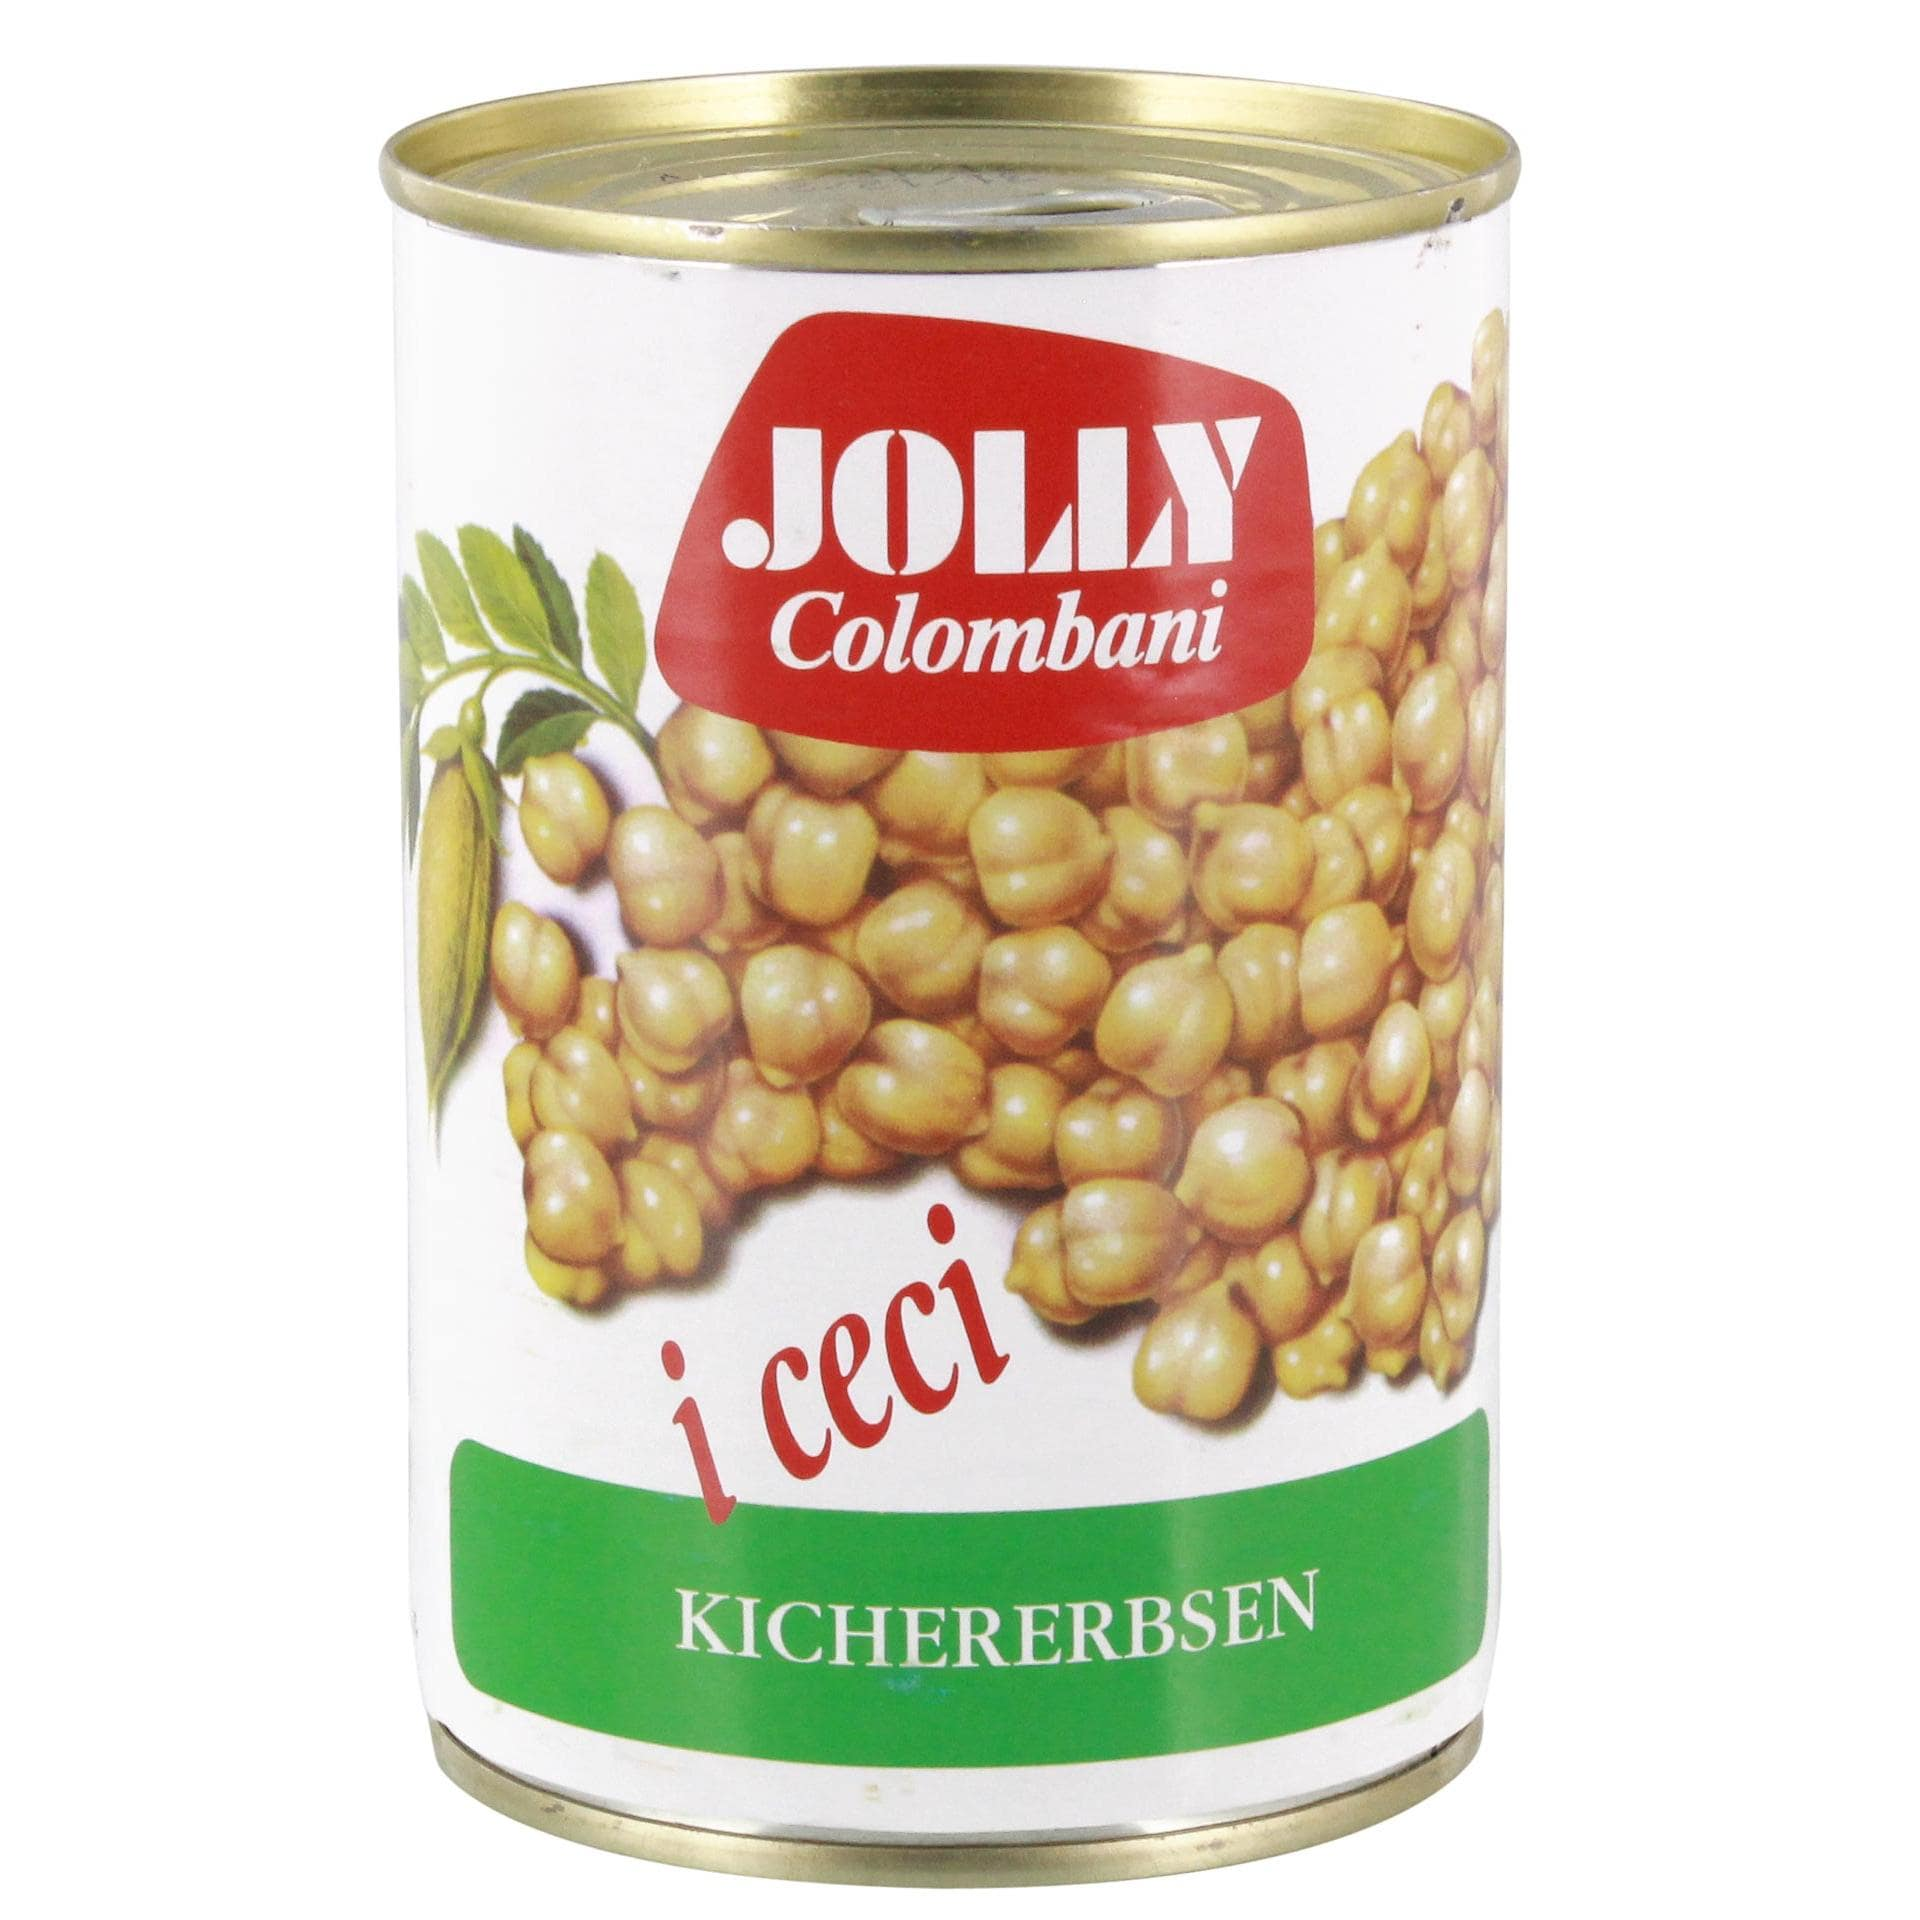 Jolly Colombani i Ceci Kichererbsen 240g